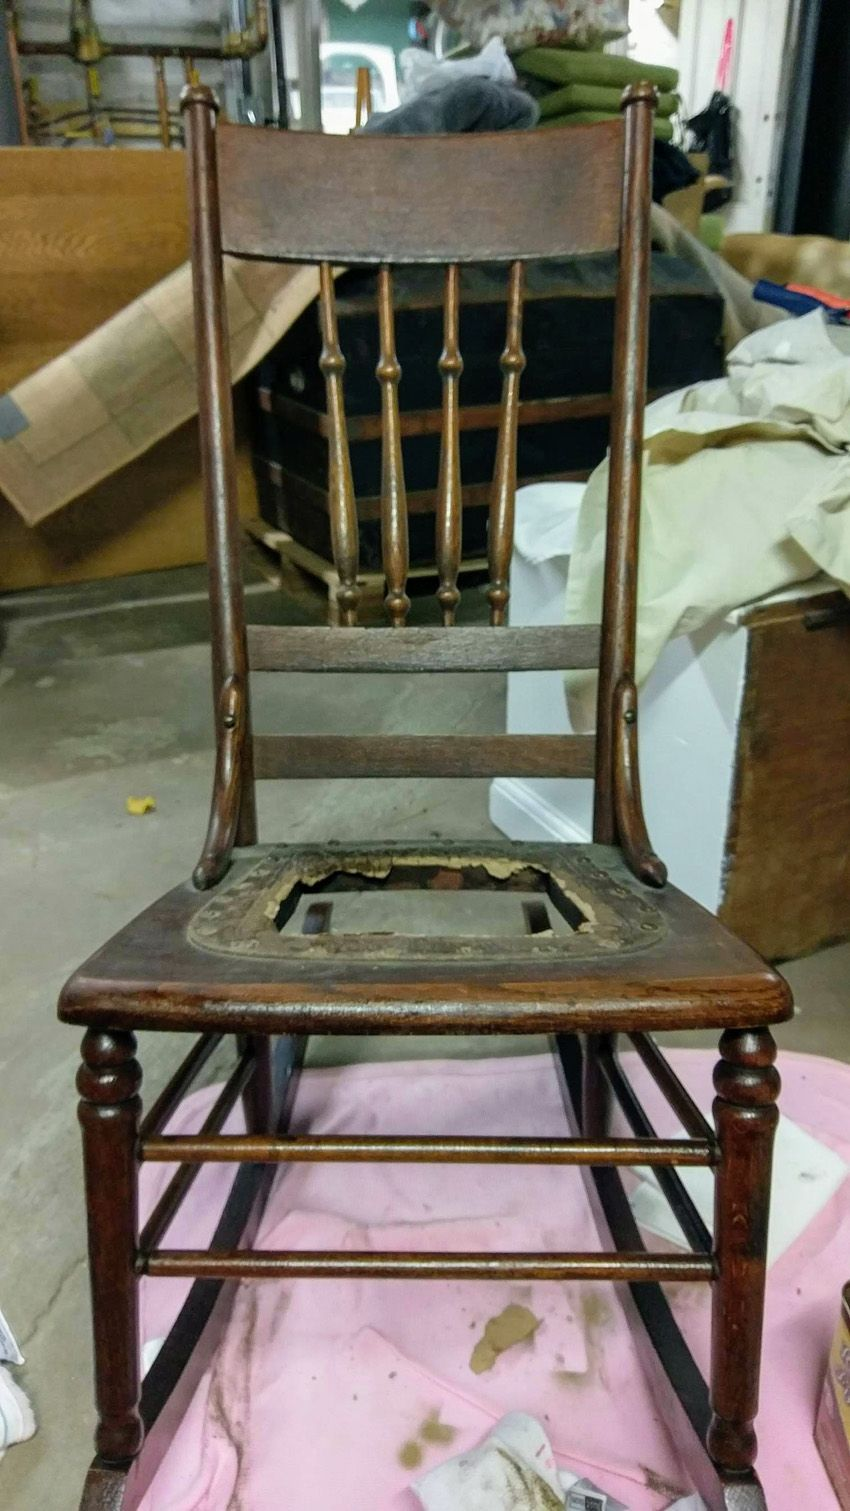 How to Replace a Leather Seat in an Antique Chair | Old ...